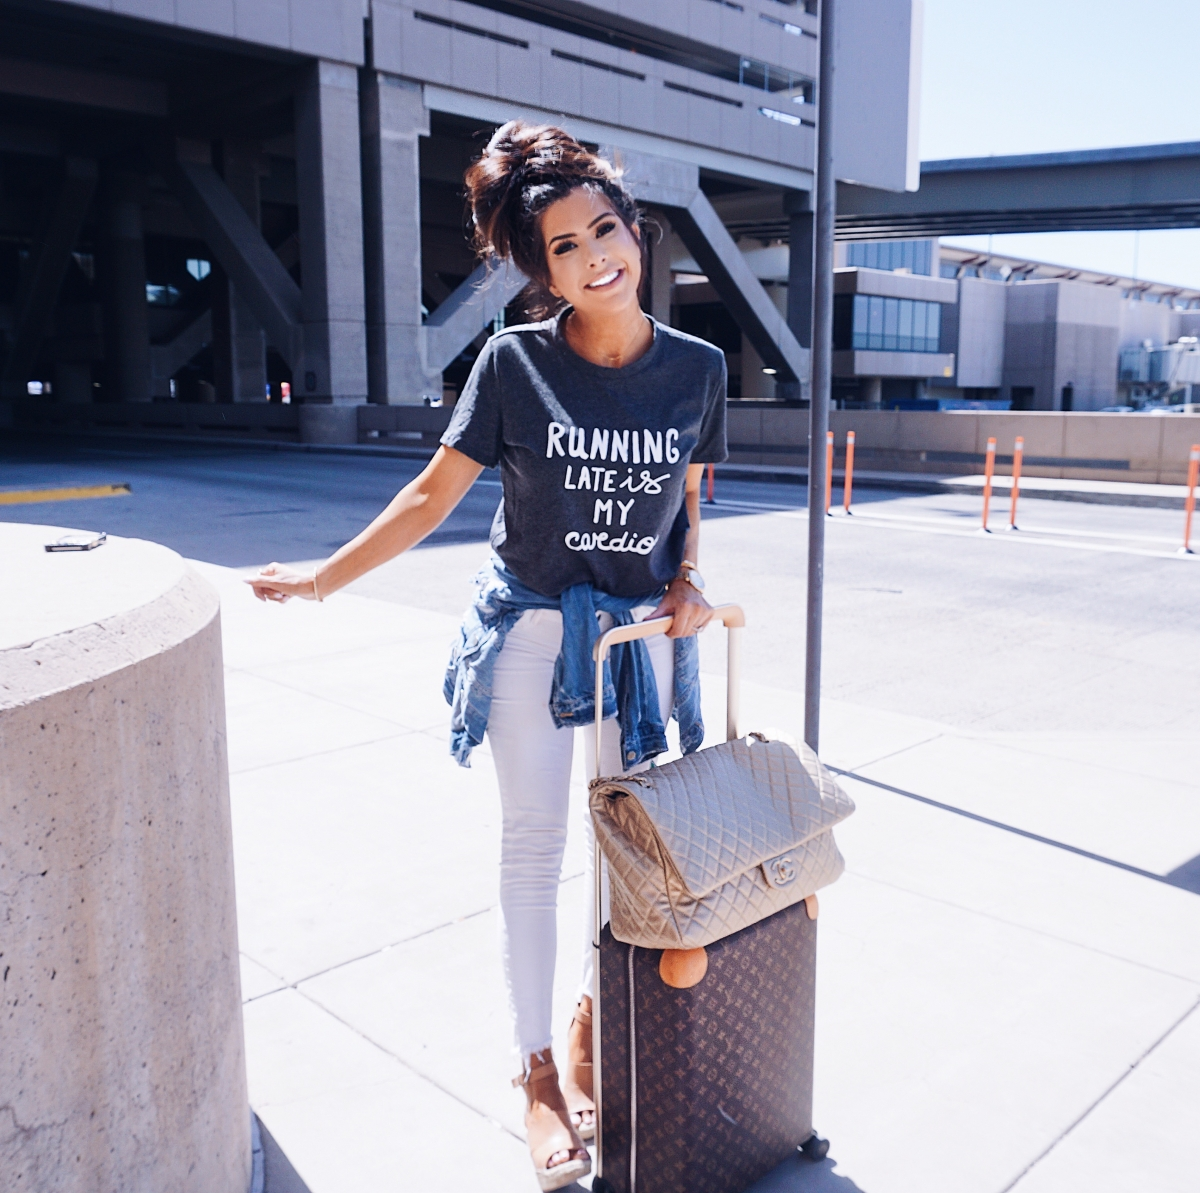 cute airport travel fashion outfit fall 2018, emily gemma travel style, stylish cute casual travel outfit idea 2018, louis vuitton horizon carry on monogram, XL chanel bag airline tote gold